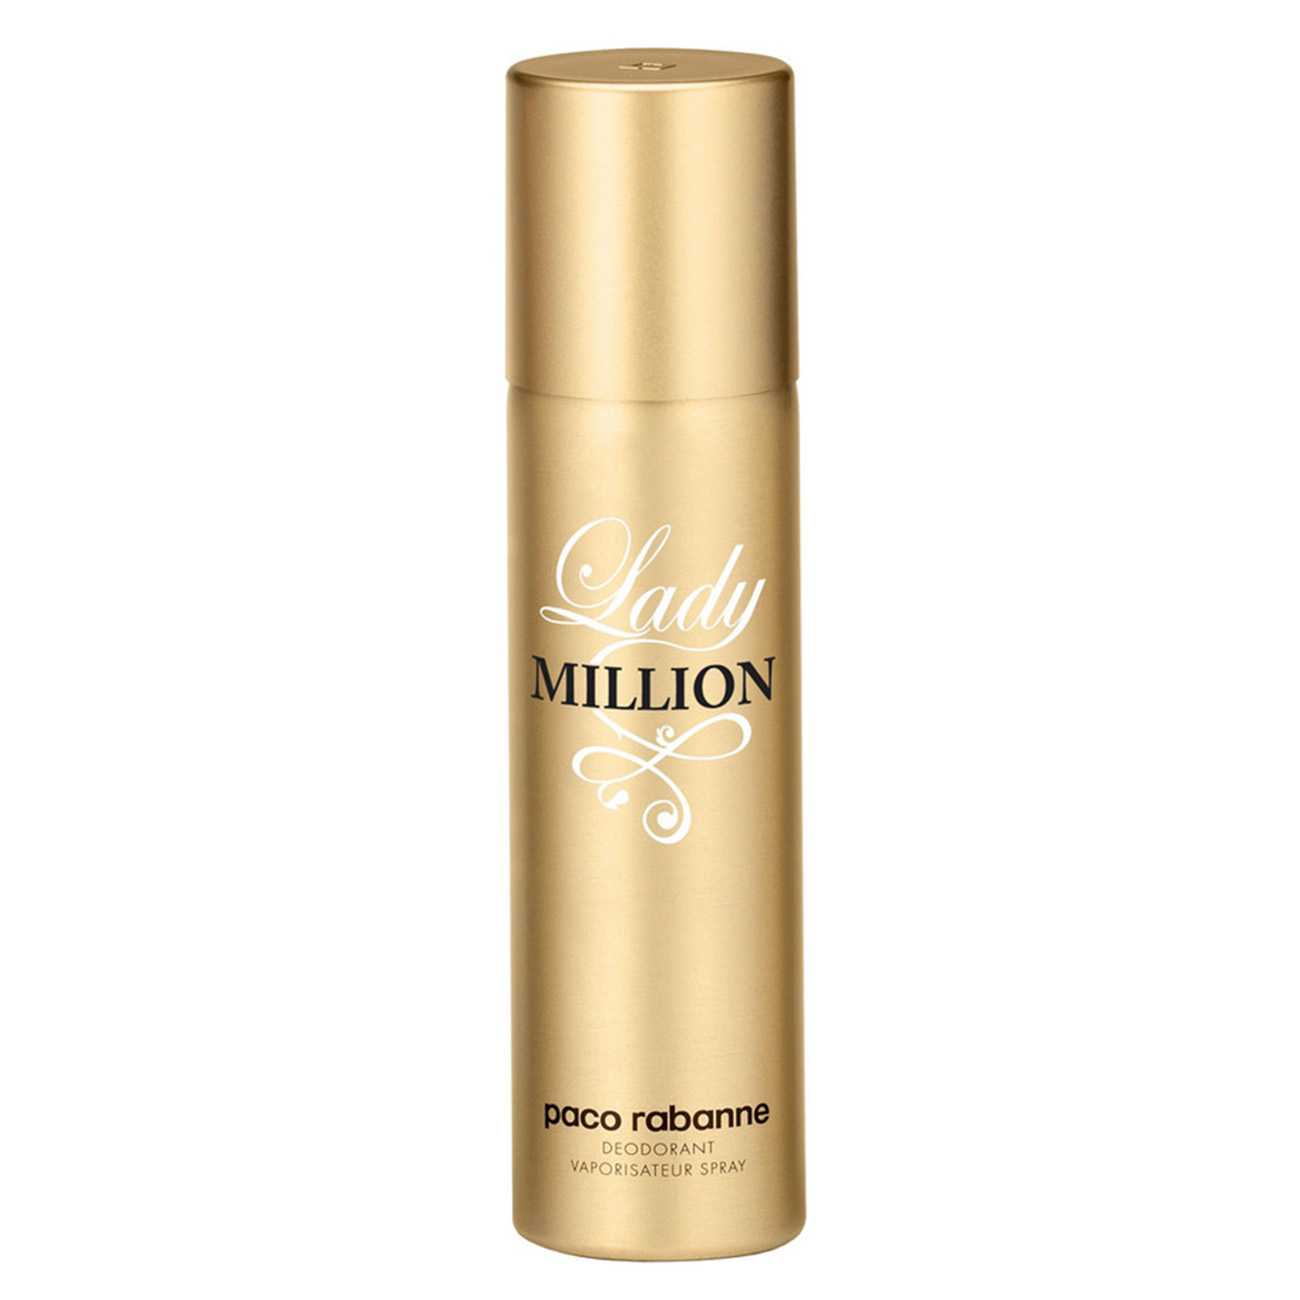 LADY MILLION 150 ML imagine produs